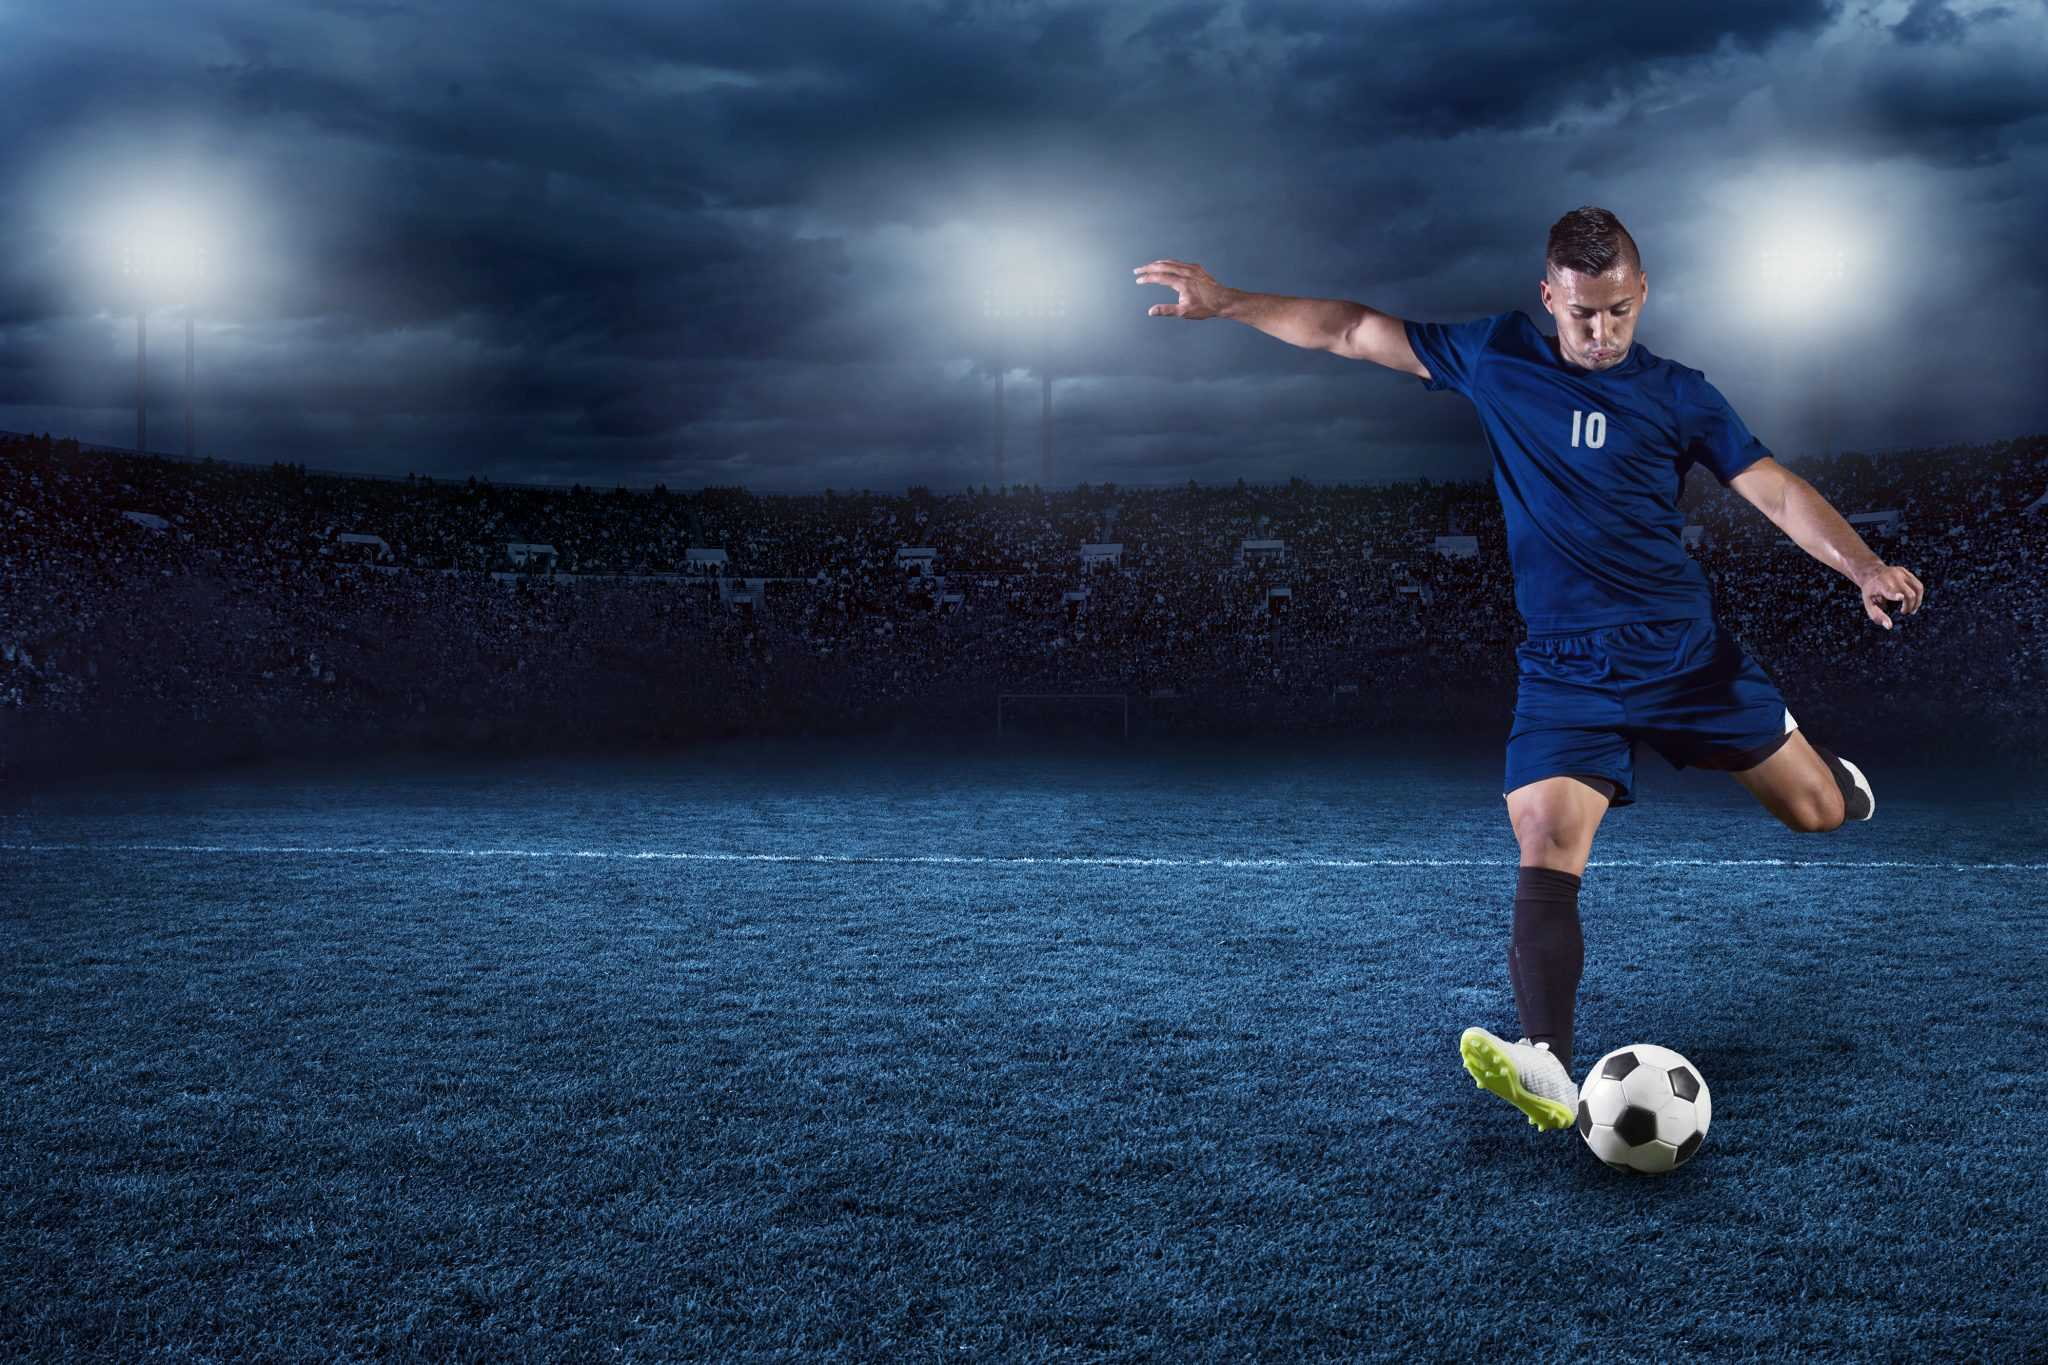 How to Shoot a Soccer Ball